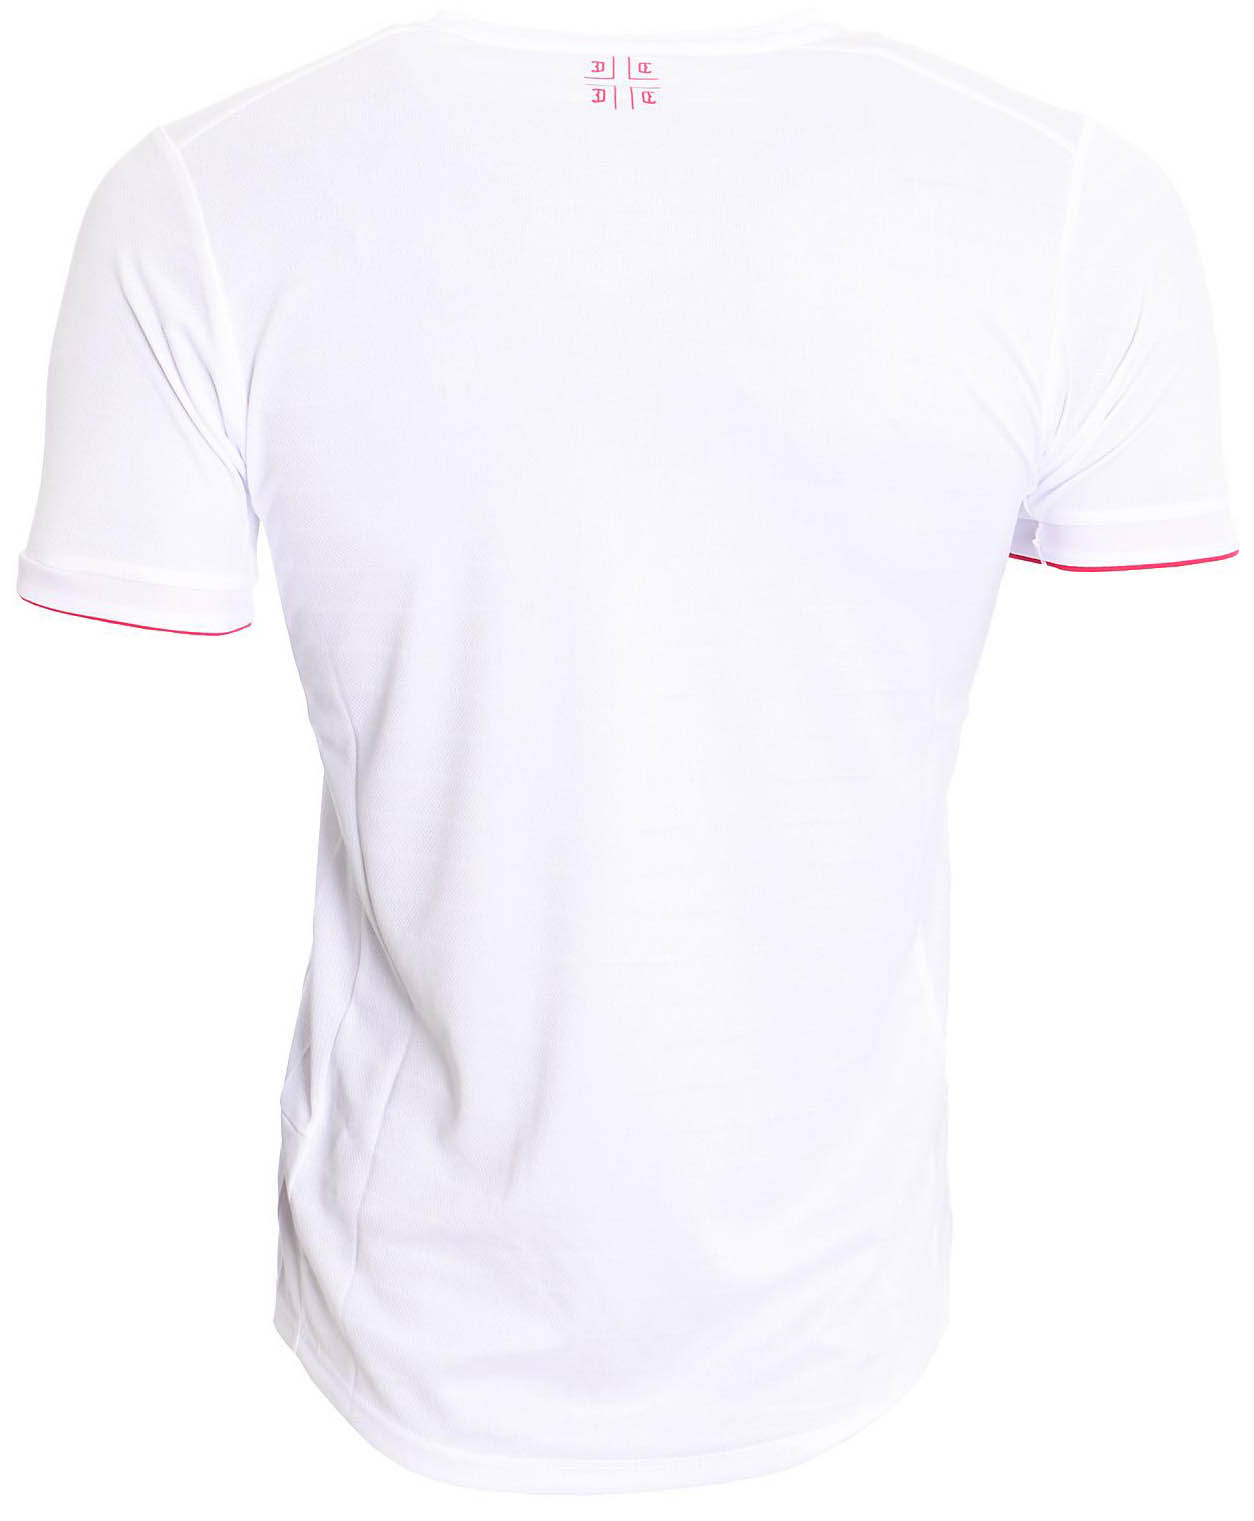 f8f9dfce125 The shirt is a simple white design. There is no coloured trim beyond the  red edging of the cuffs and a red panel in the v-neck collar.